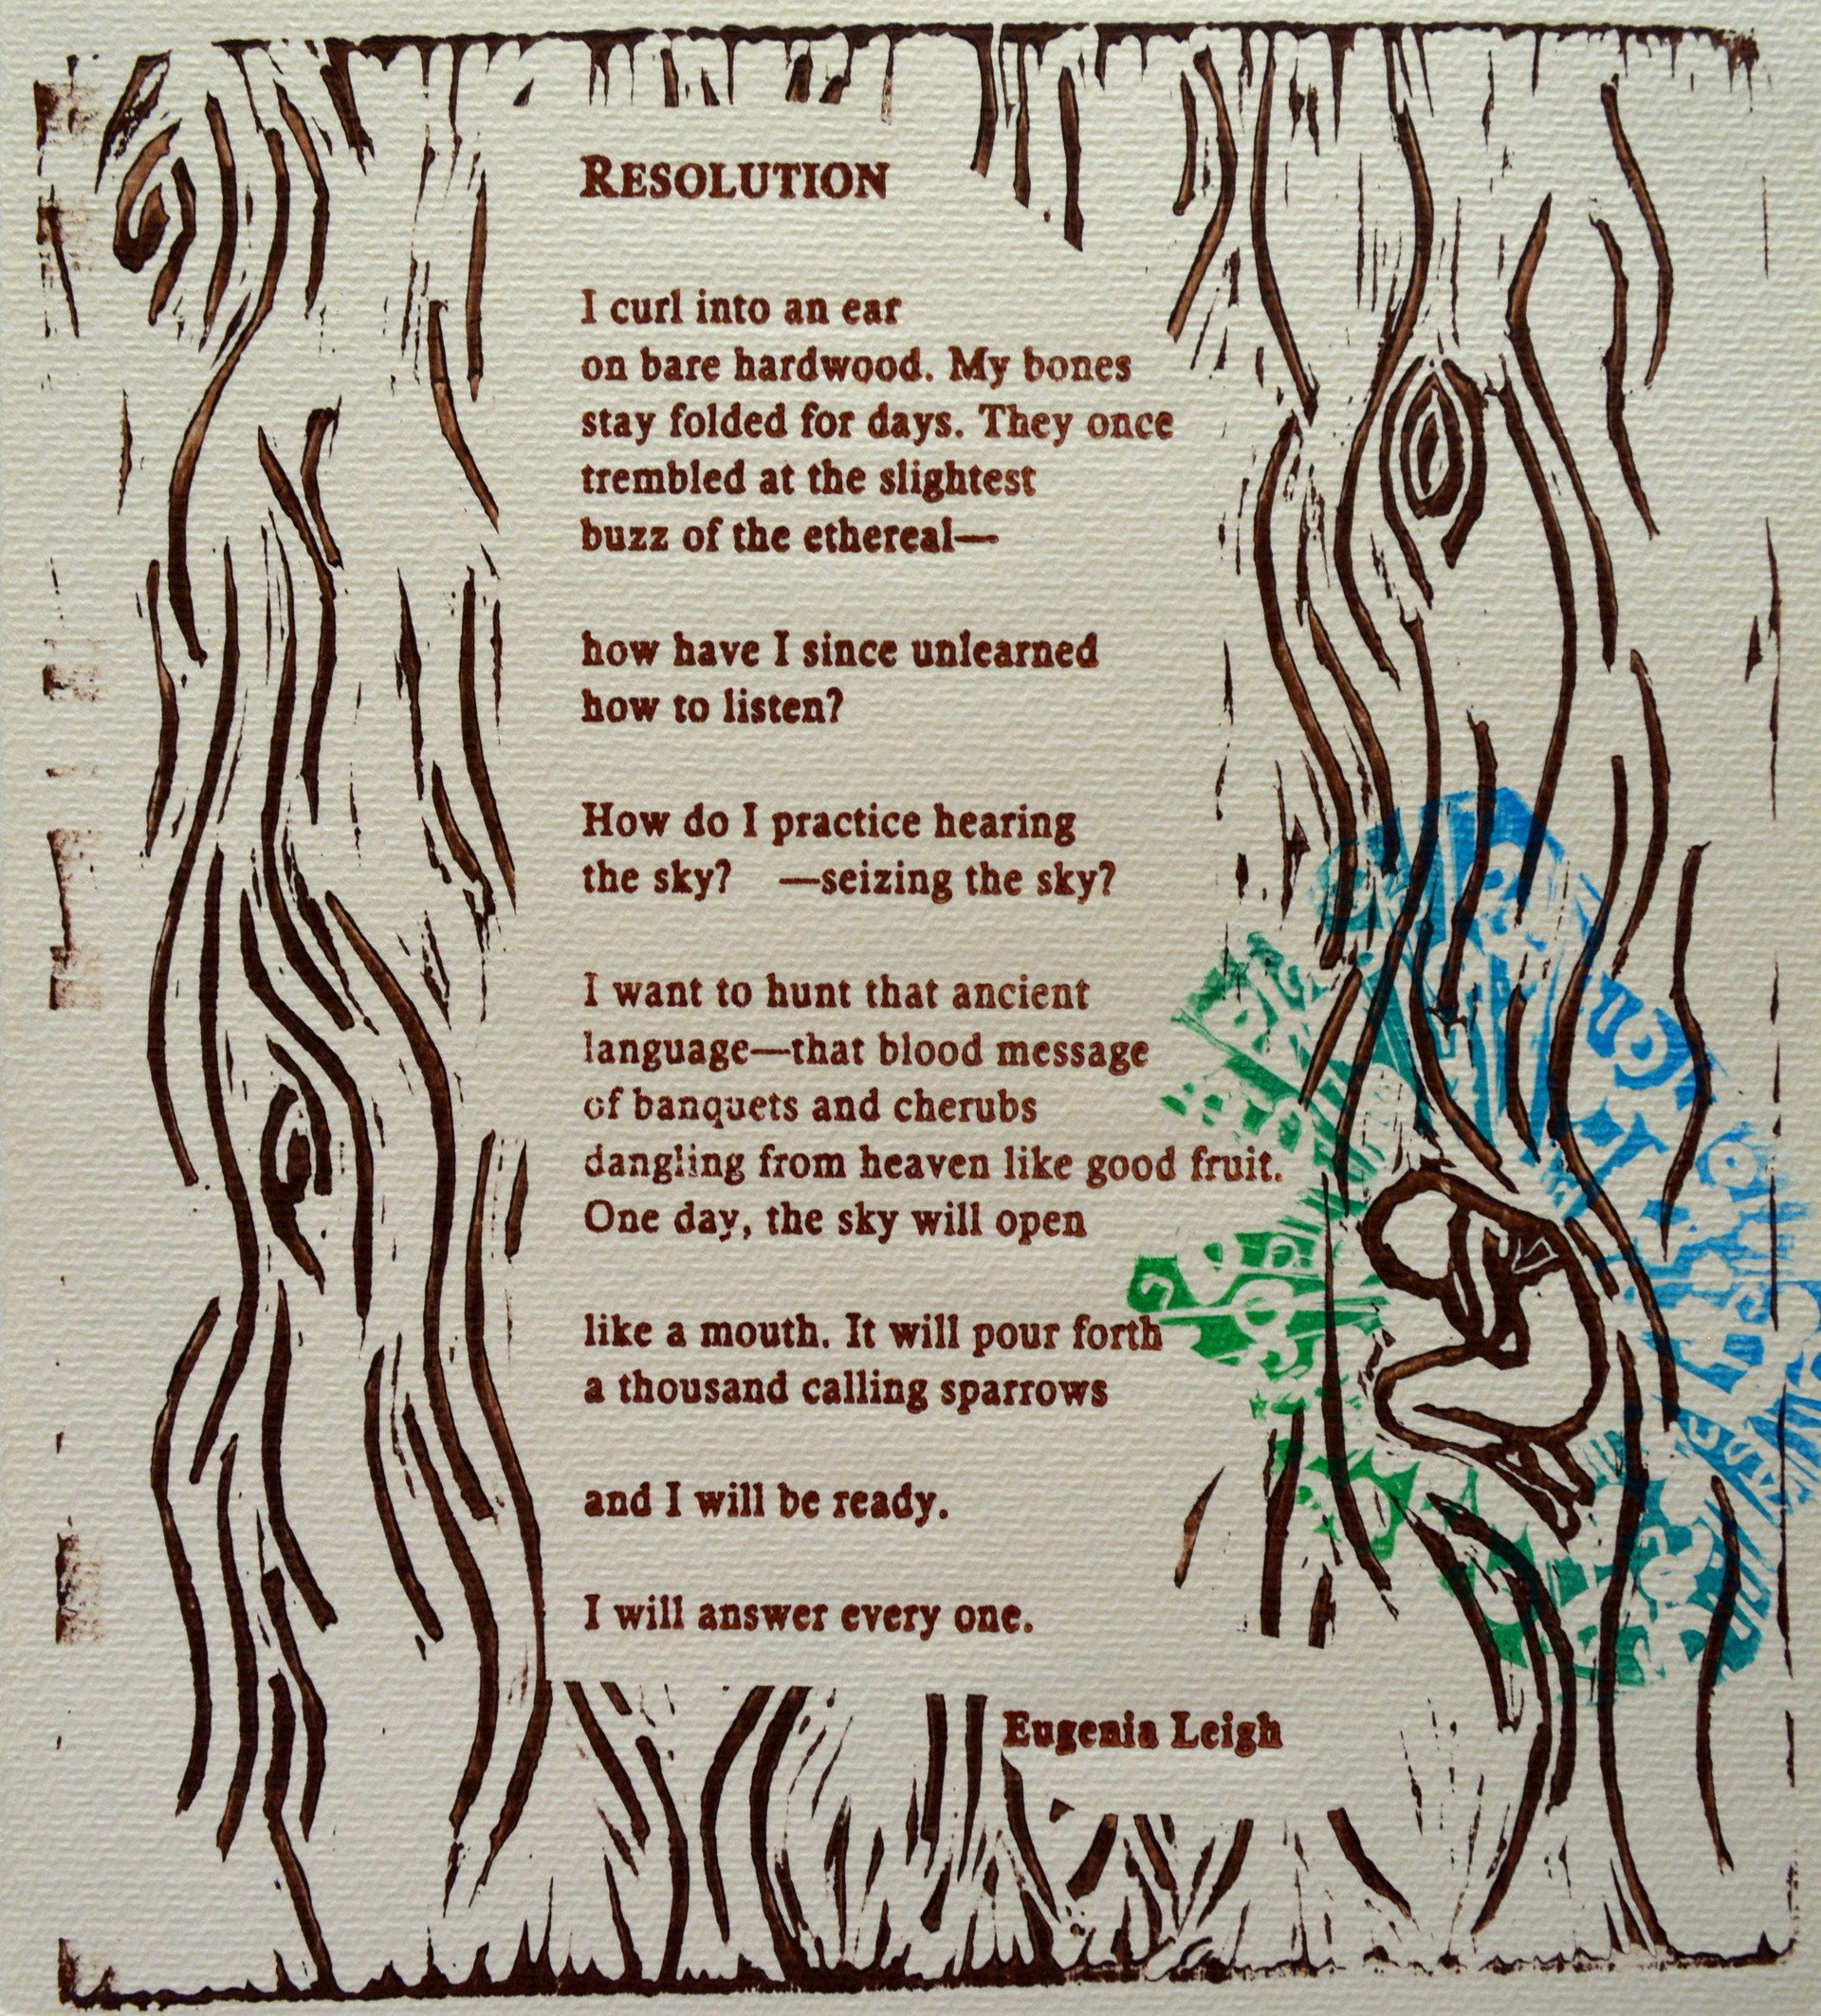 Resolution by Allison Hull